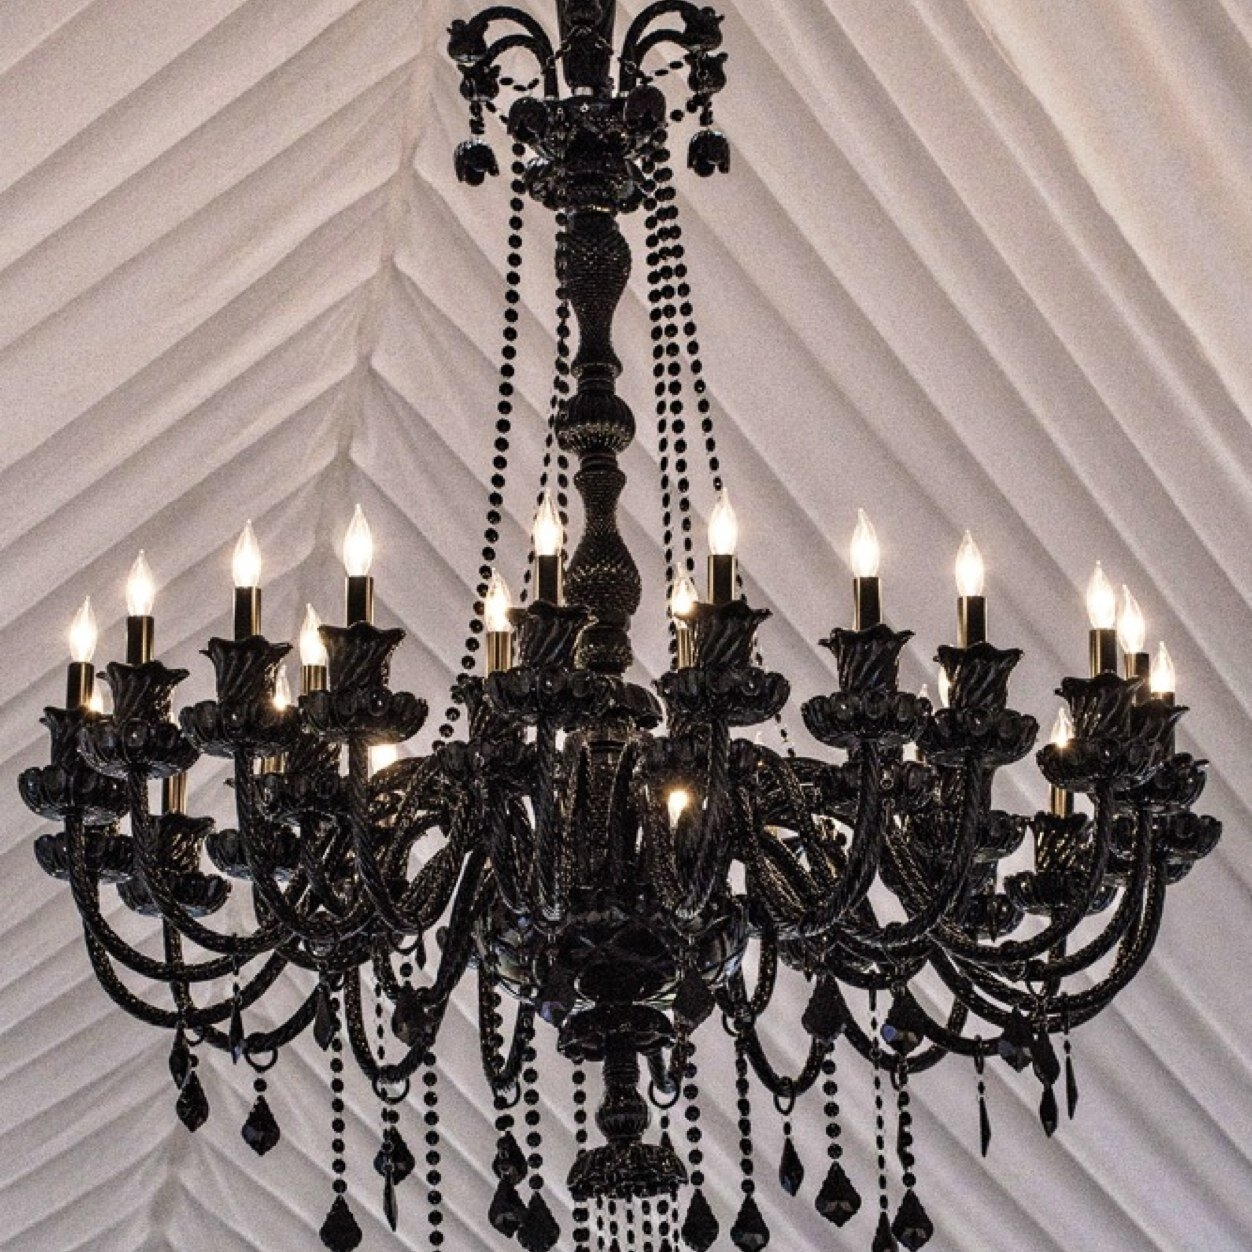 Black Chandelier Blackchandelier Twitter Pertaining To Black Chandeliers (Image 3 of 15)